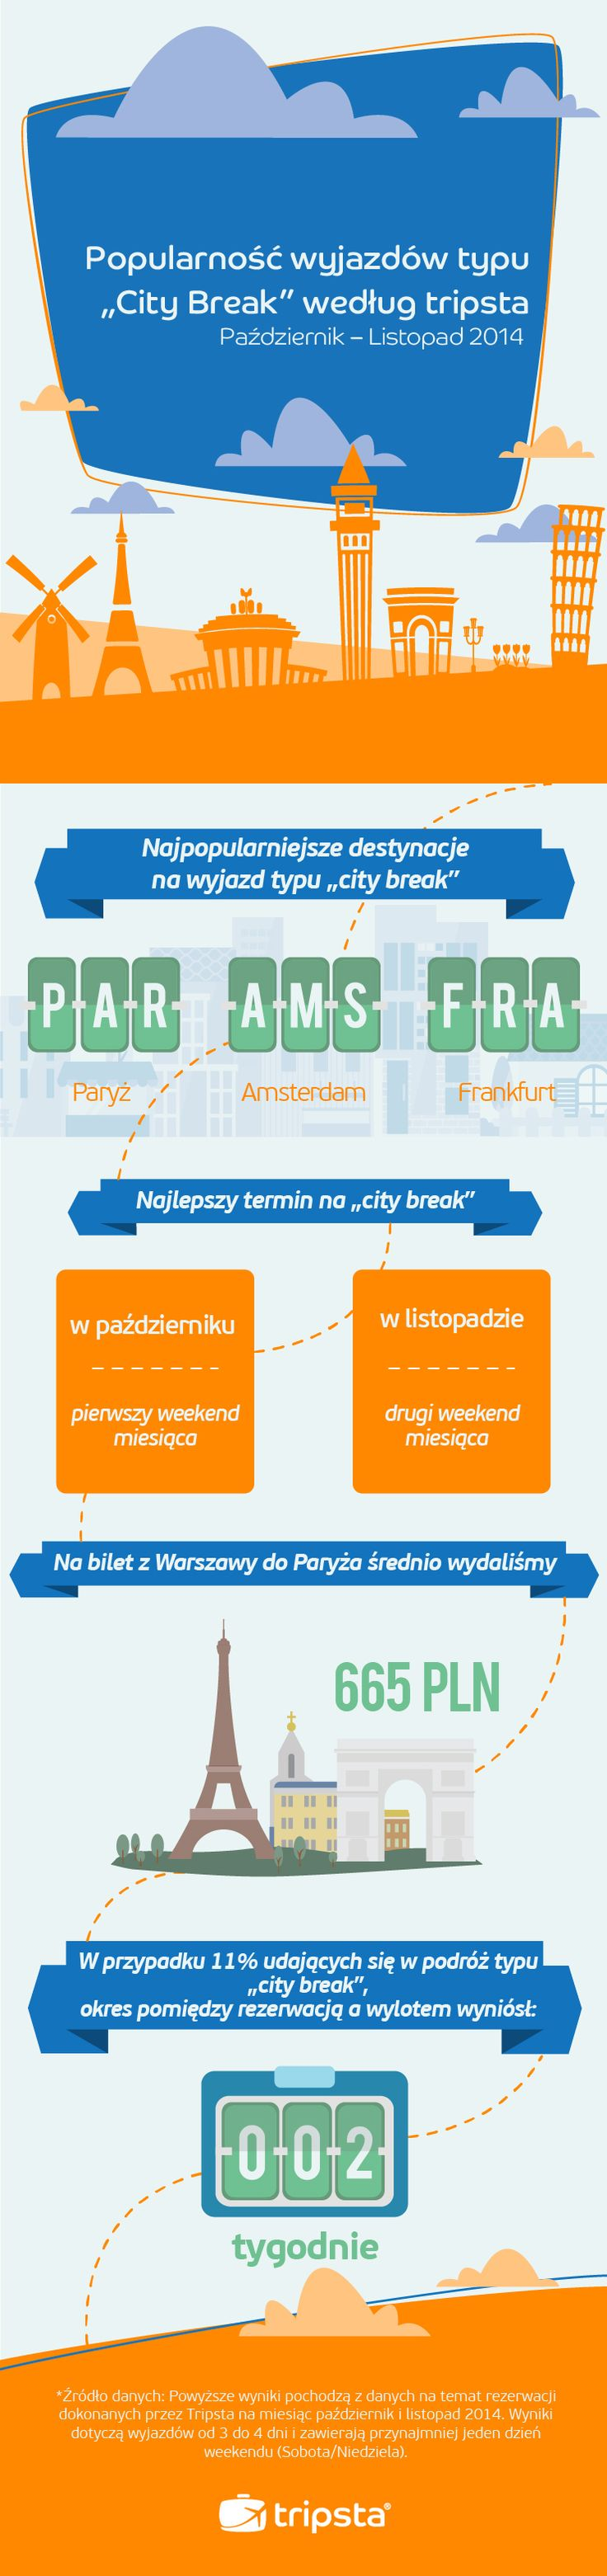 City Break Trends for Polish by Tripsta.pl #infographic #tripsta #trends #citybreaks